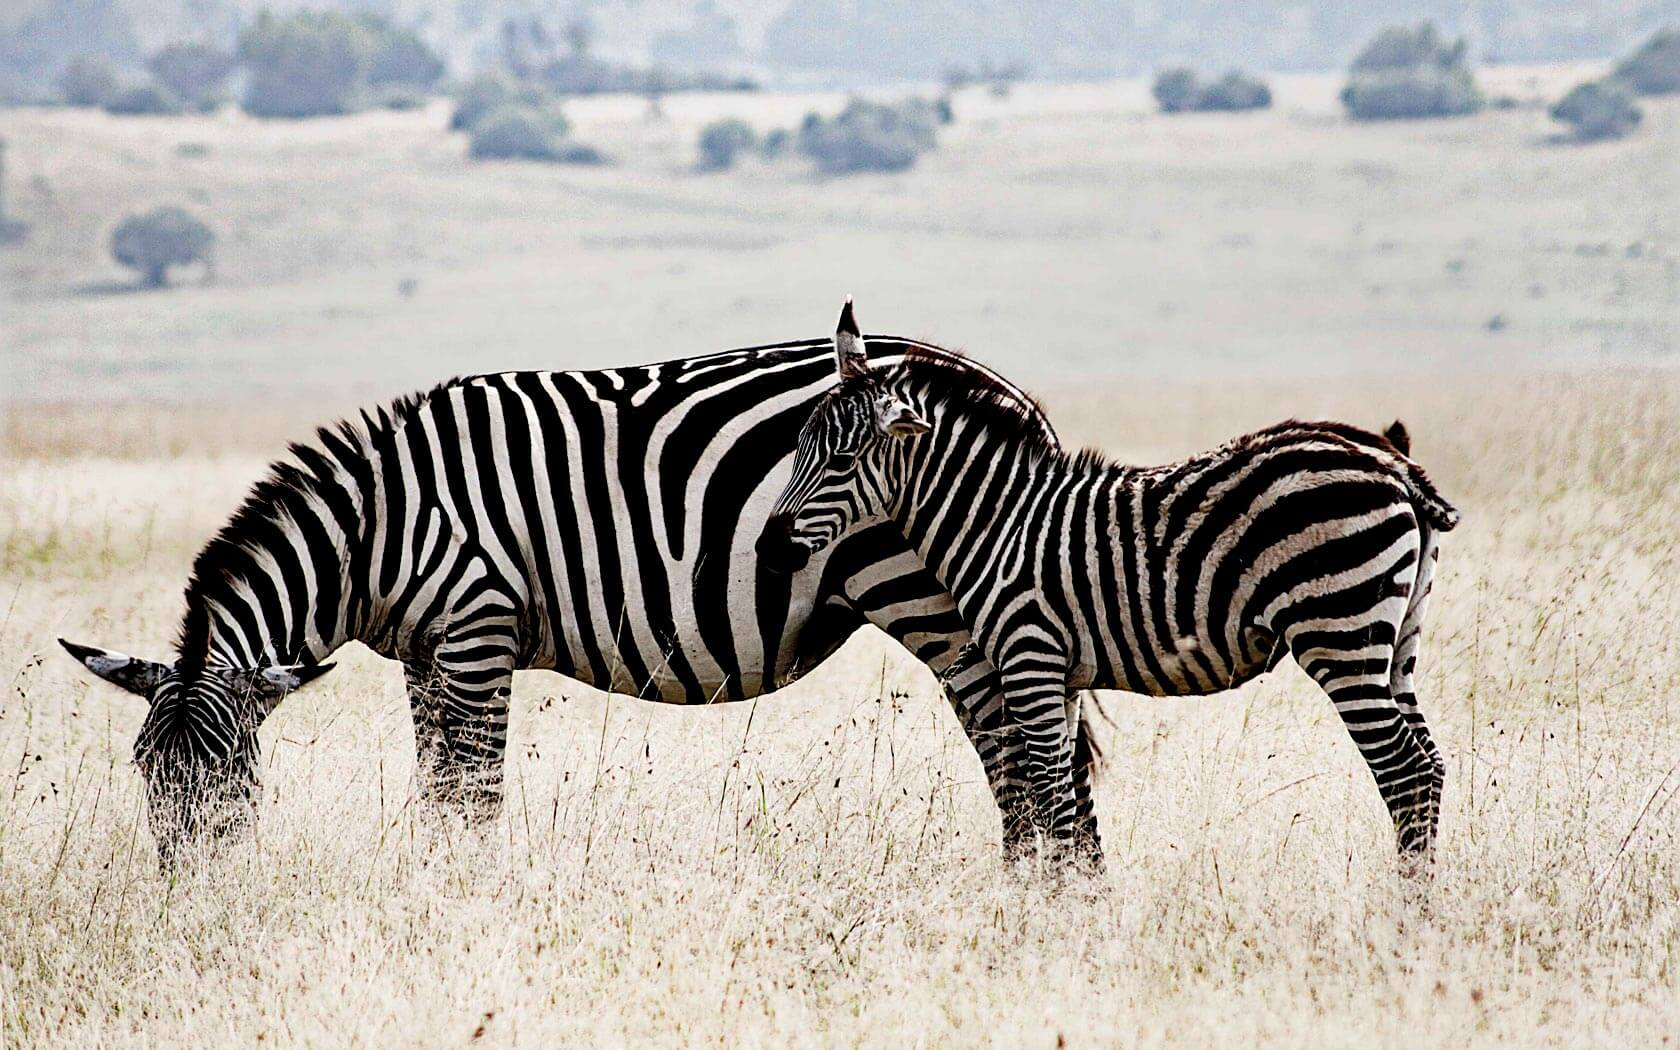 Zebras in Ruanda